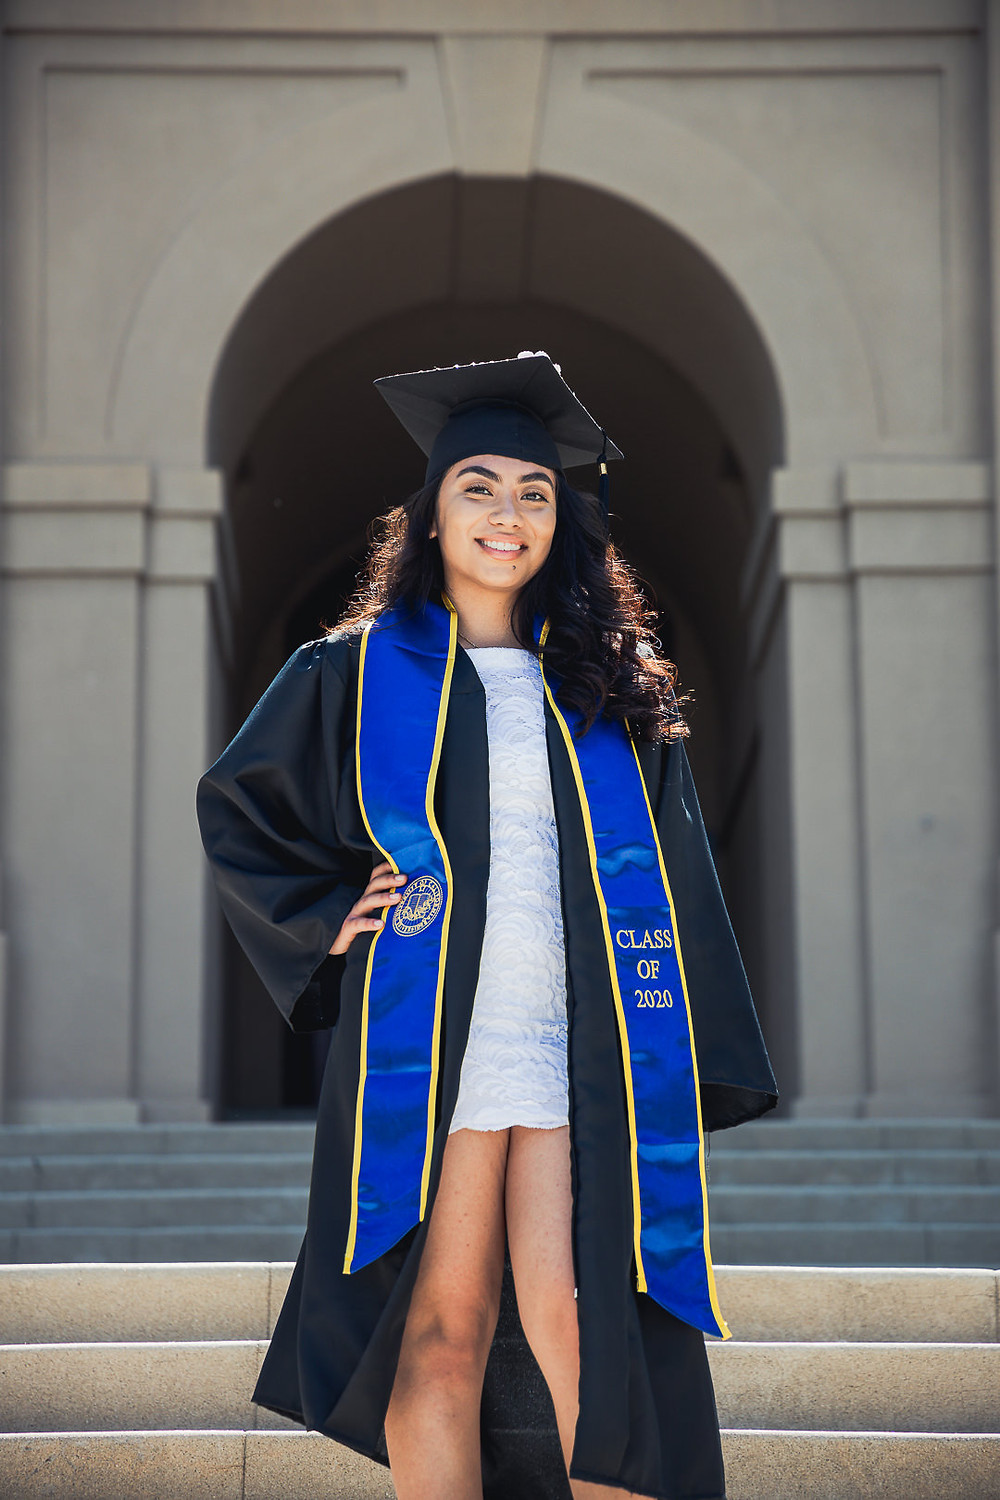 University of California Riverside Graduation Photos | Ashley 14